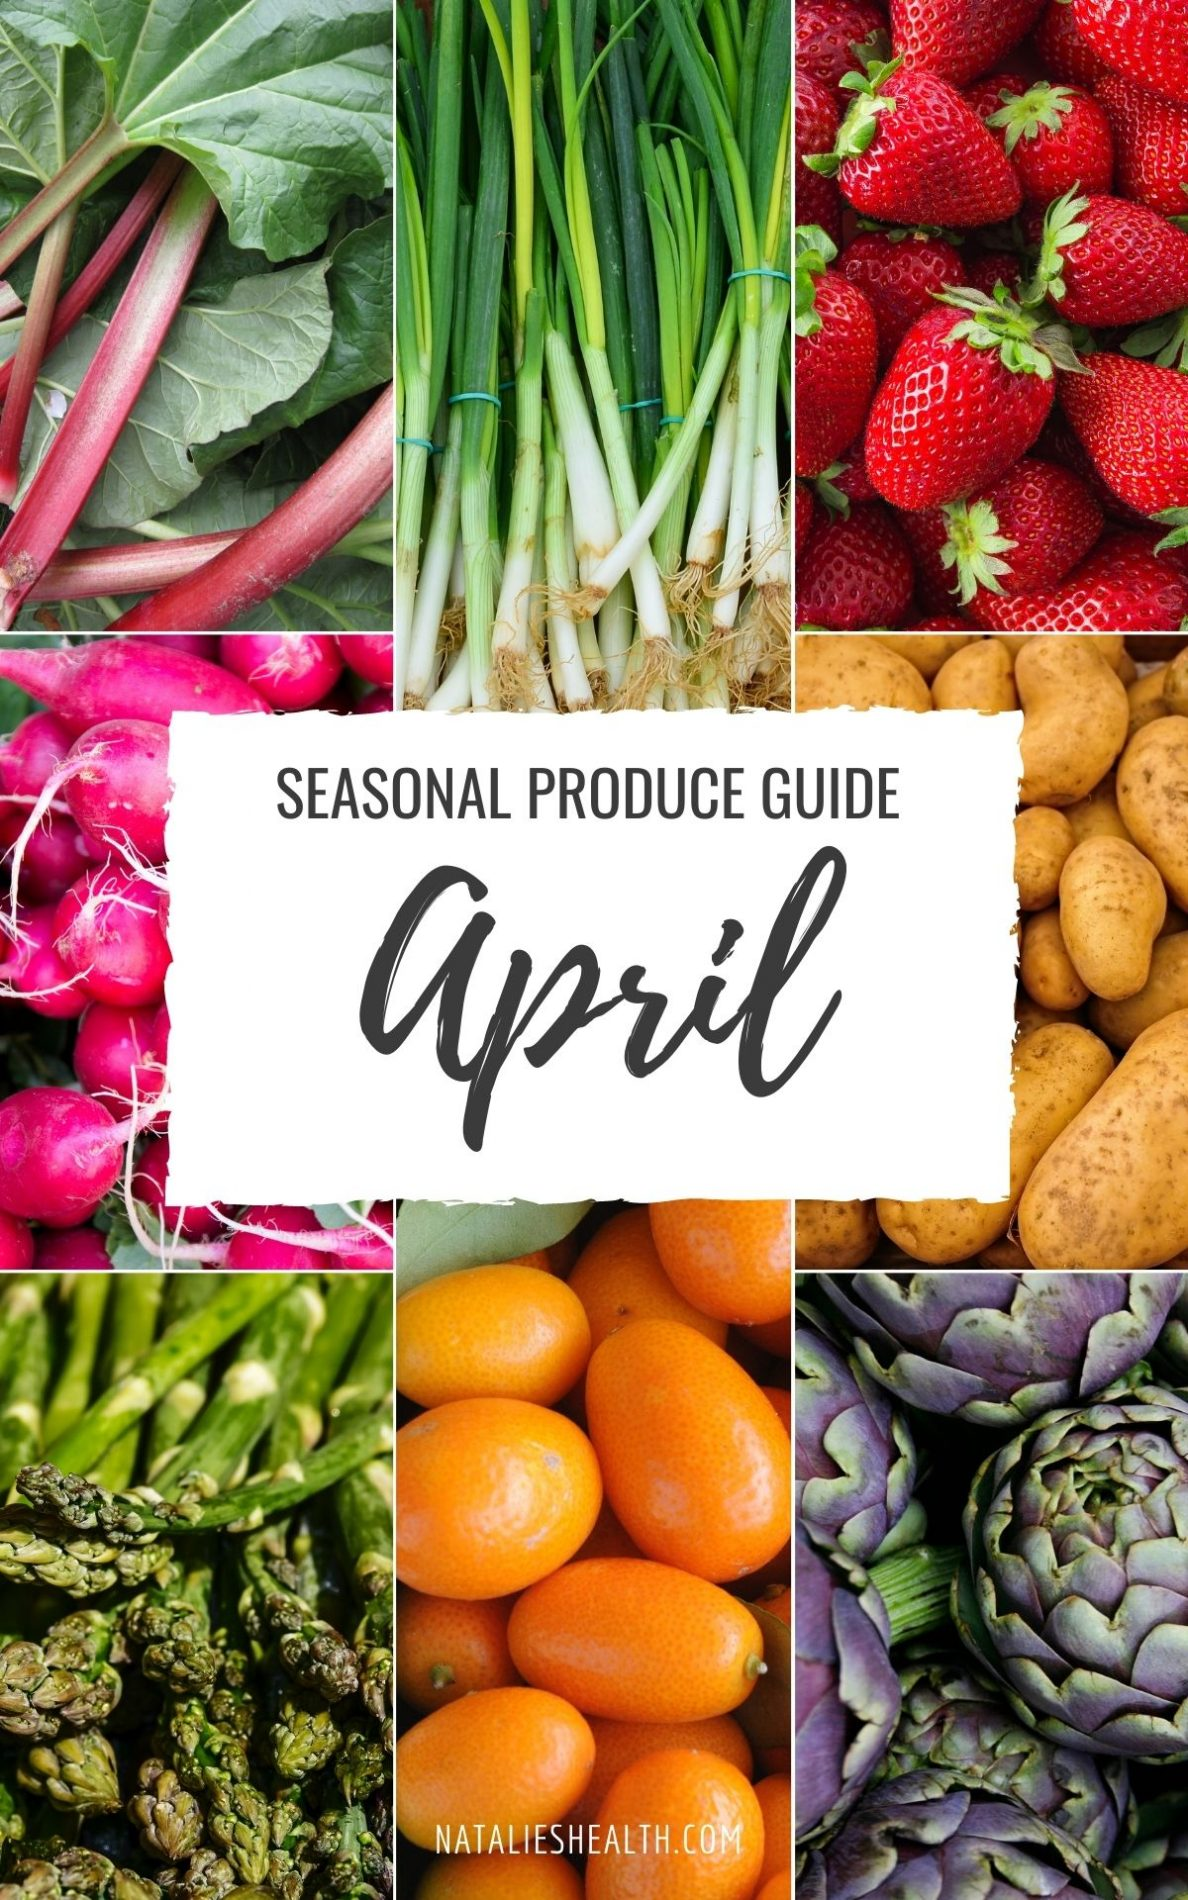 April seasonal produce guide cover photo with fresh produce